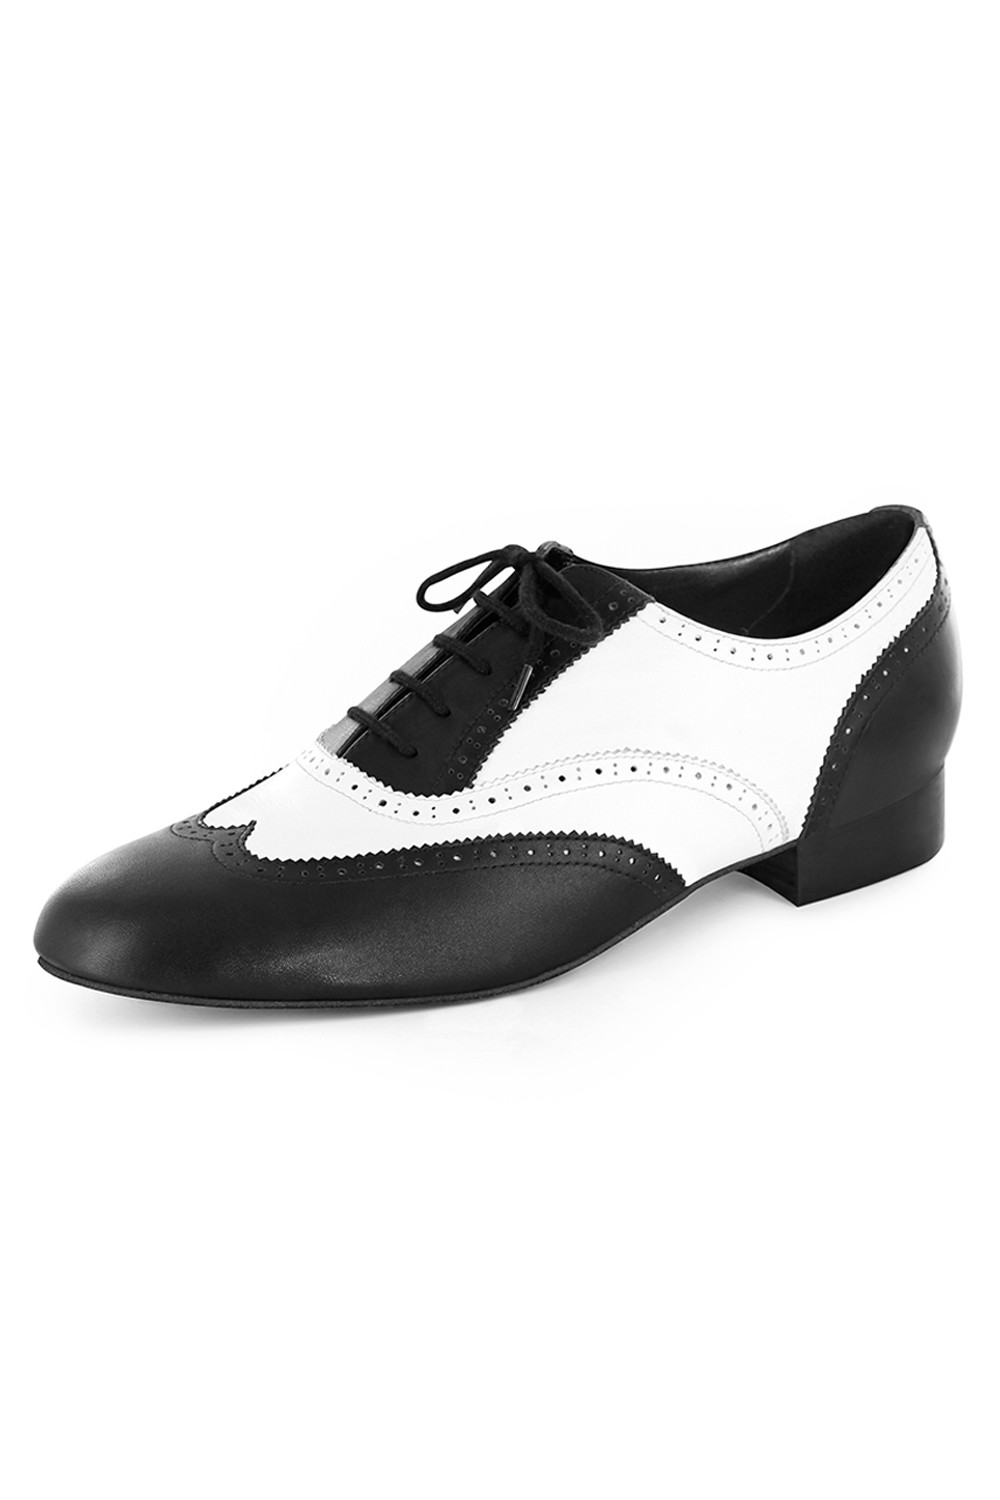 Capone - Homme Men's Ballroom & Latin Shoes